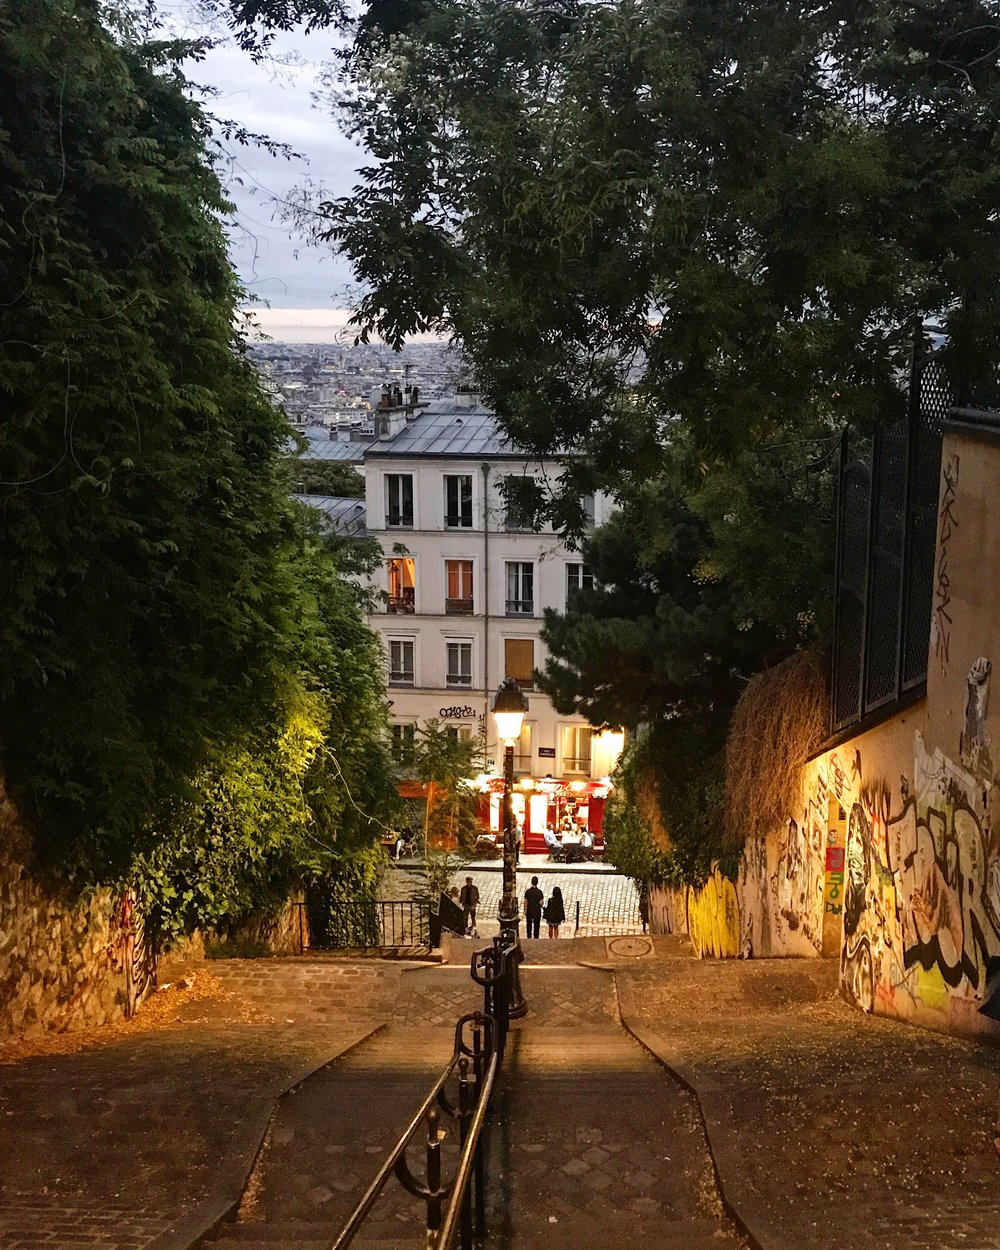 Montmartre at sundown